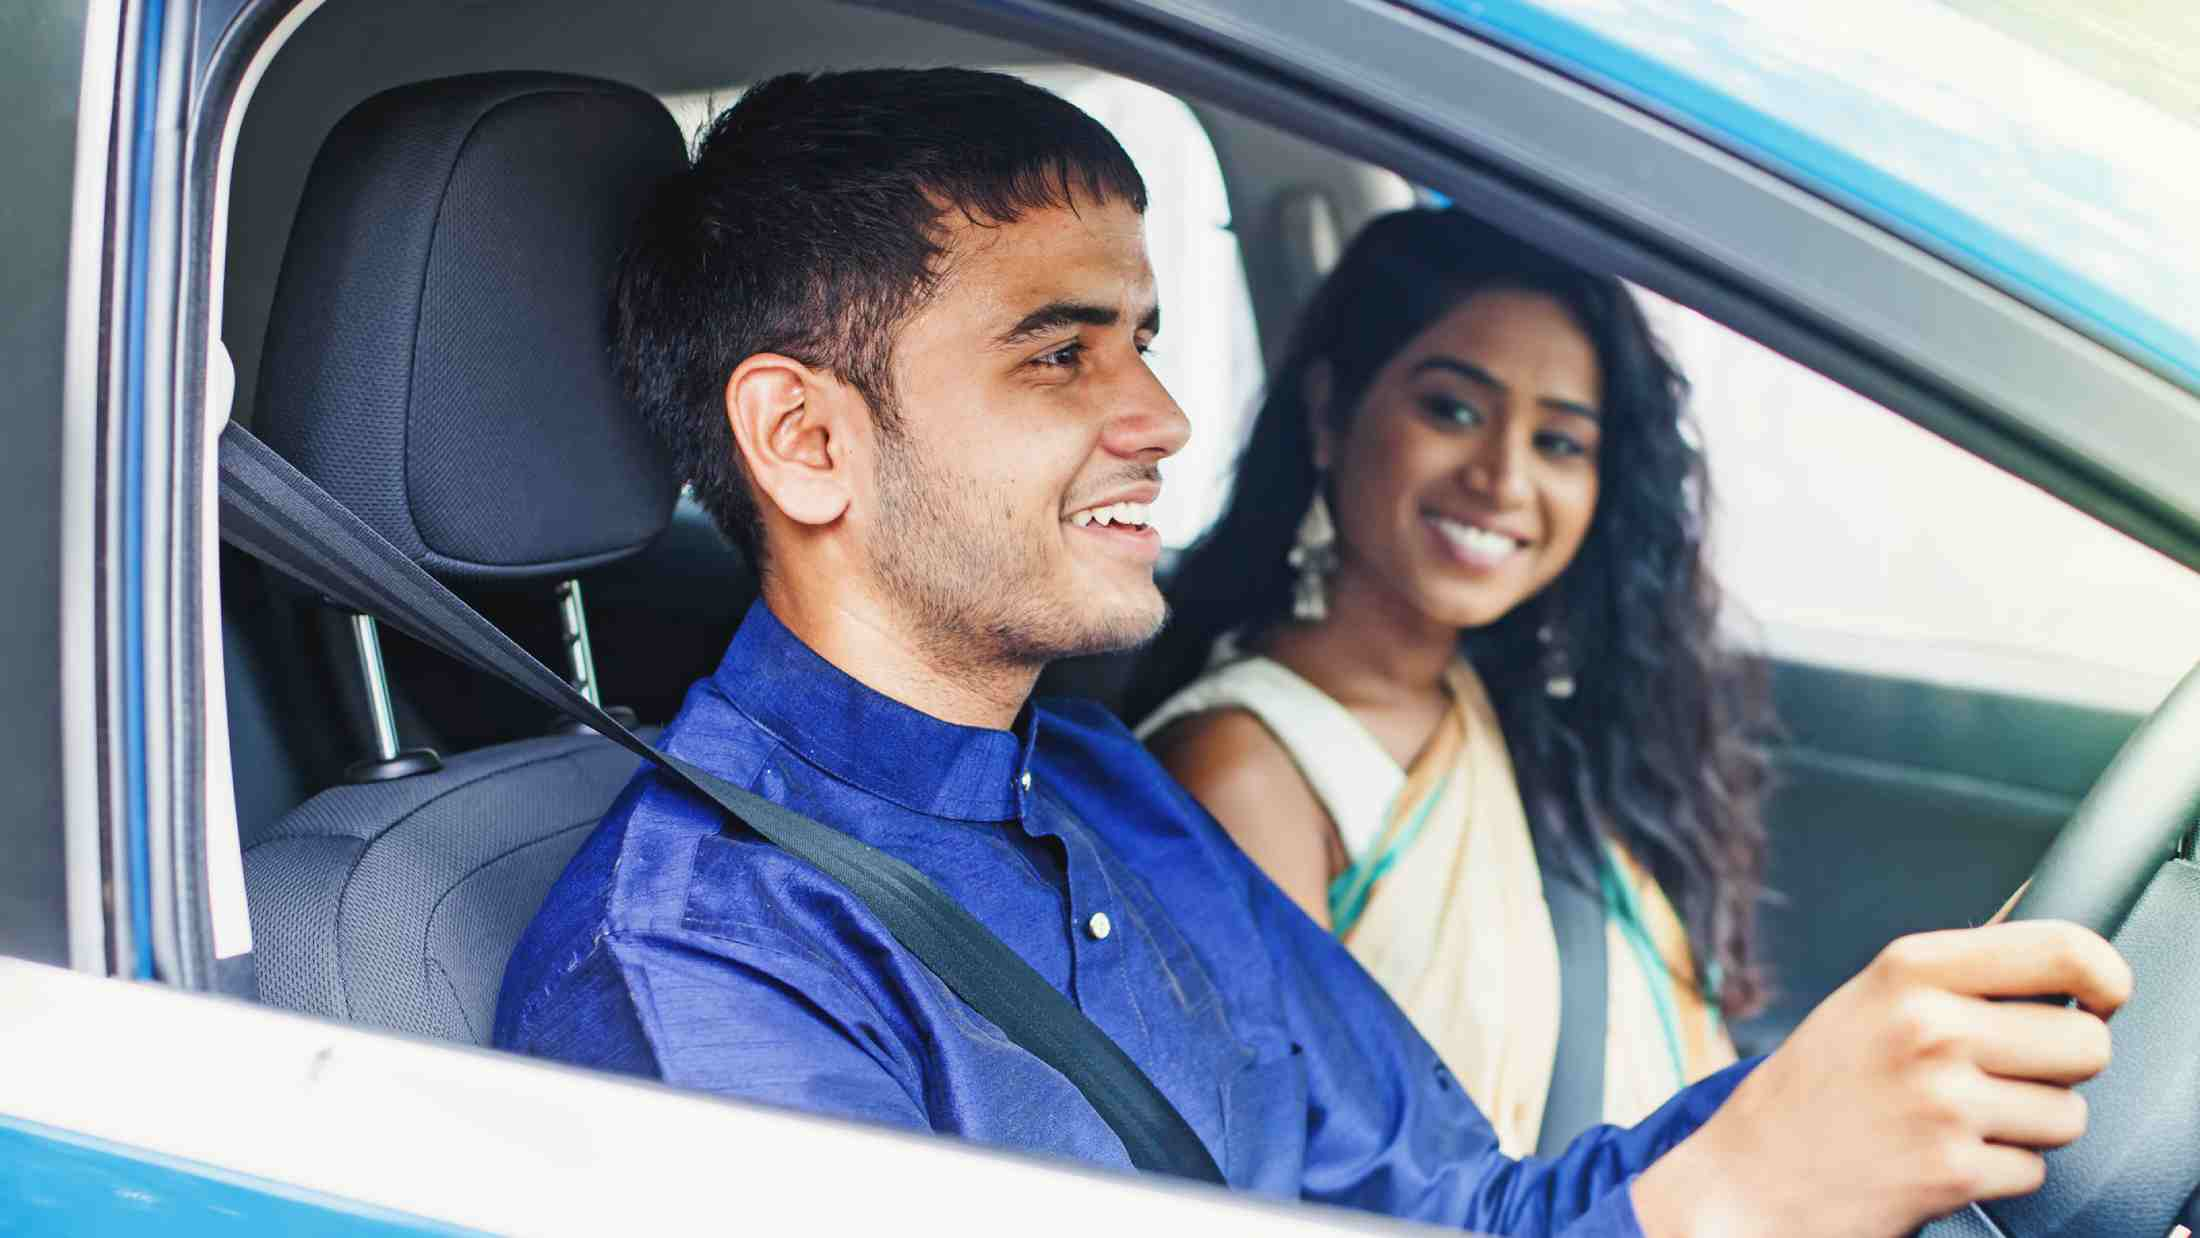 Male driver giving a ride to a young woman in a blue car